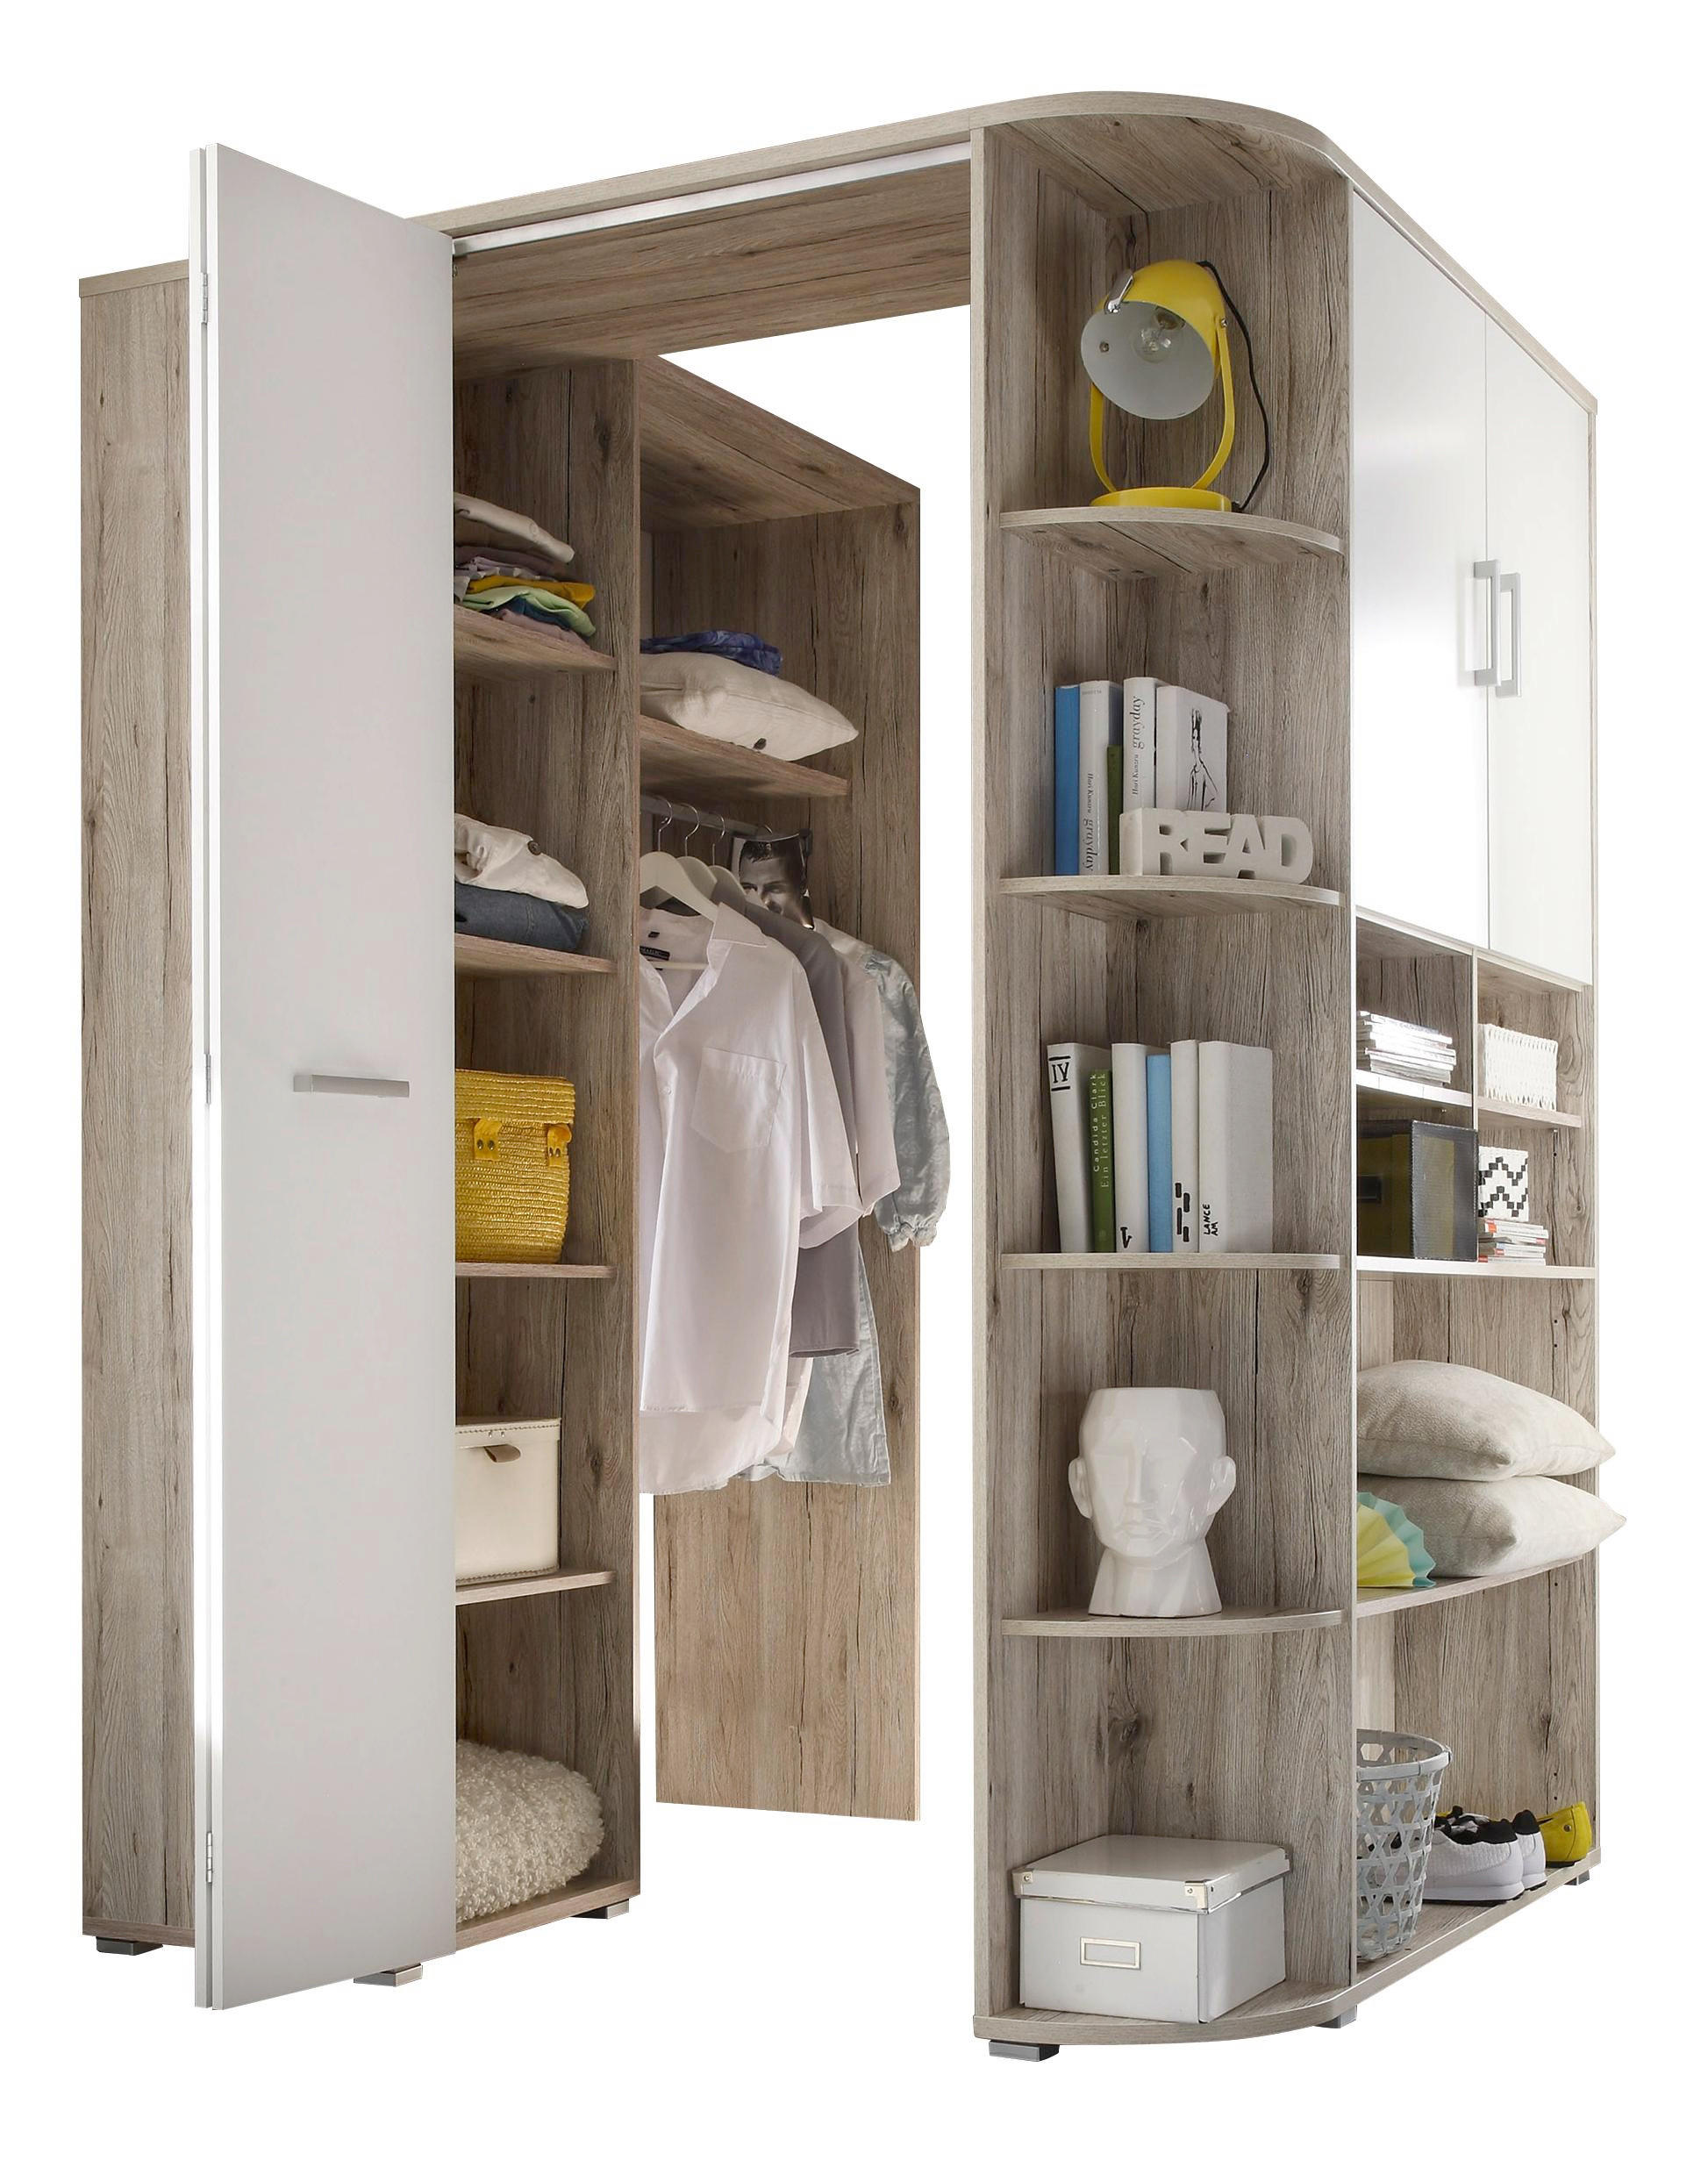 Wundervoll Eckschrank Garderobe Dekoration Von Beautiful Beautiful In Eichefarben Wei Design With